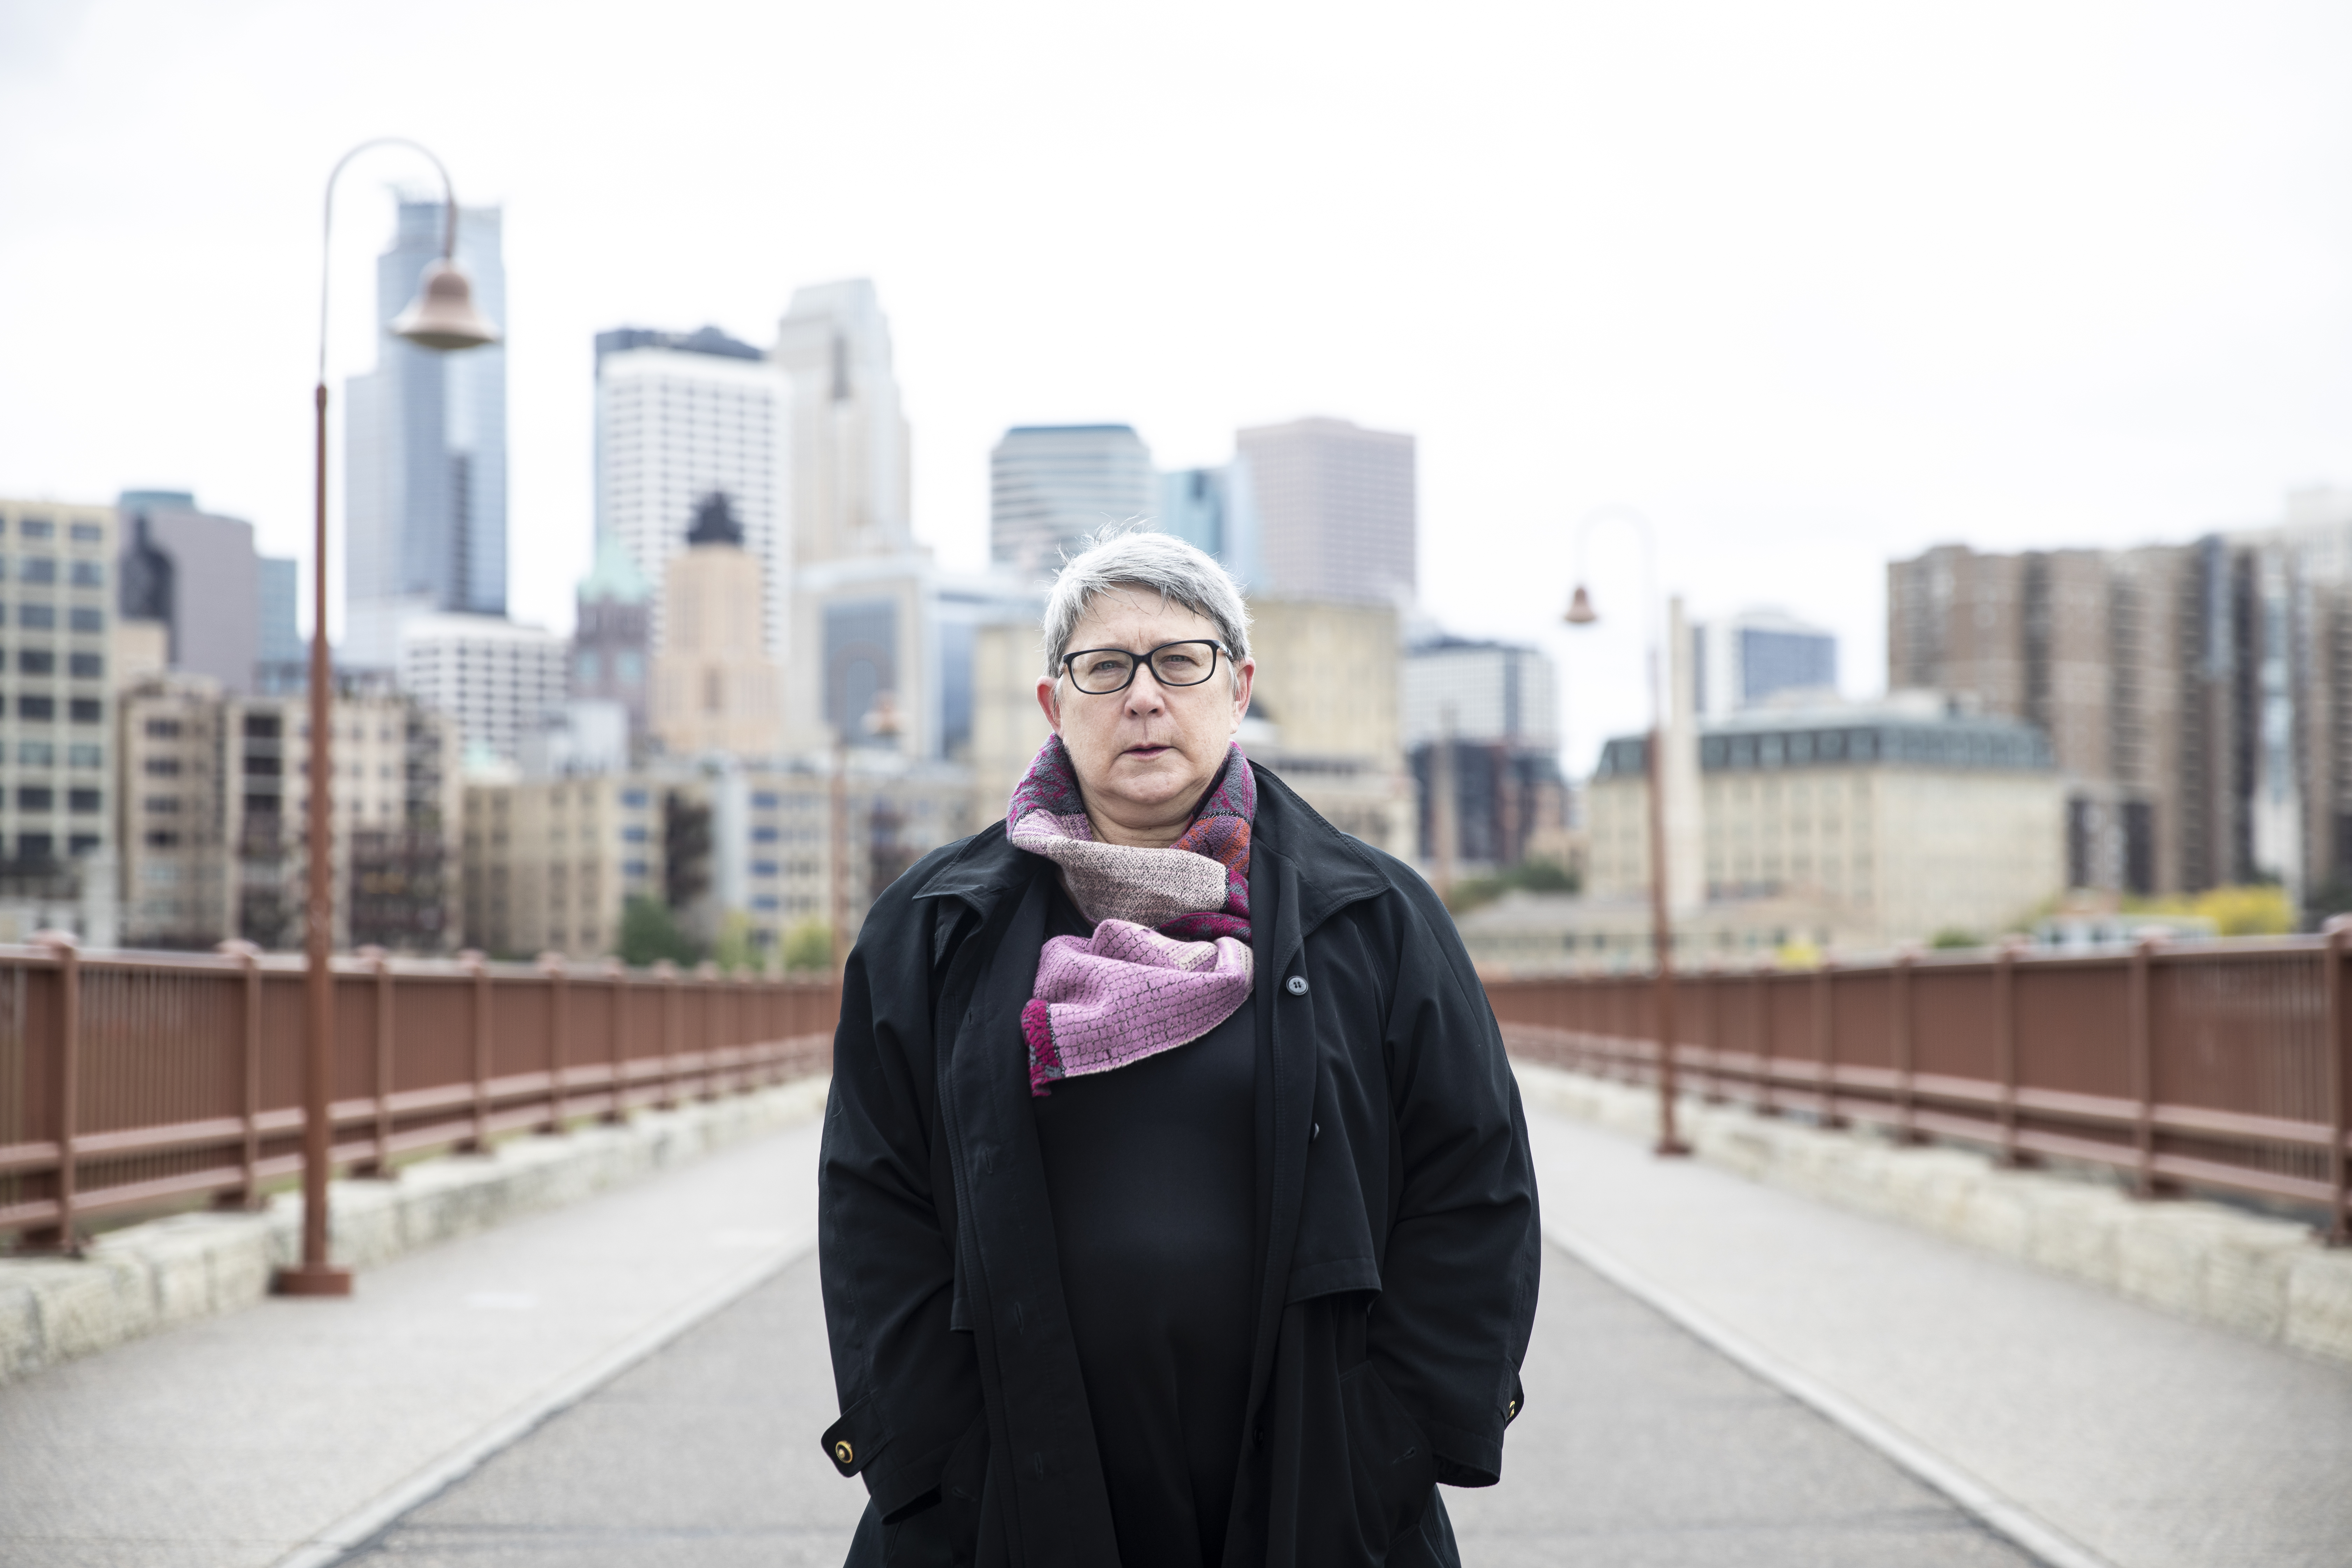 A portrait of Jane Turner, a former FBI agent and whistleblower, in Minneapolis, Minn., on Friday, Oct. 11, 2019.